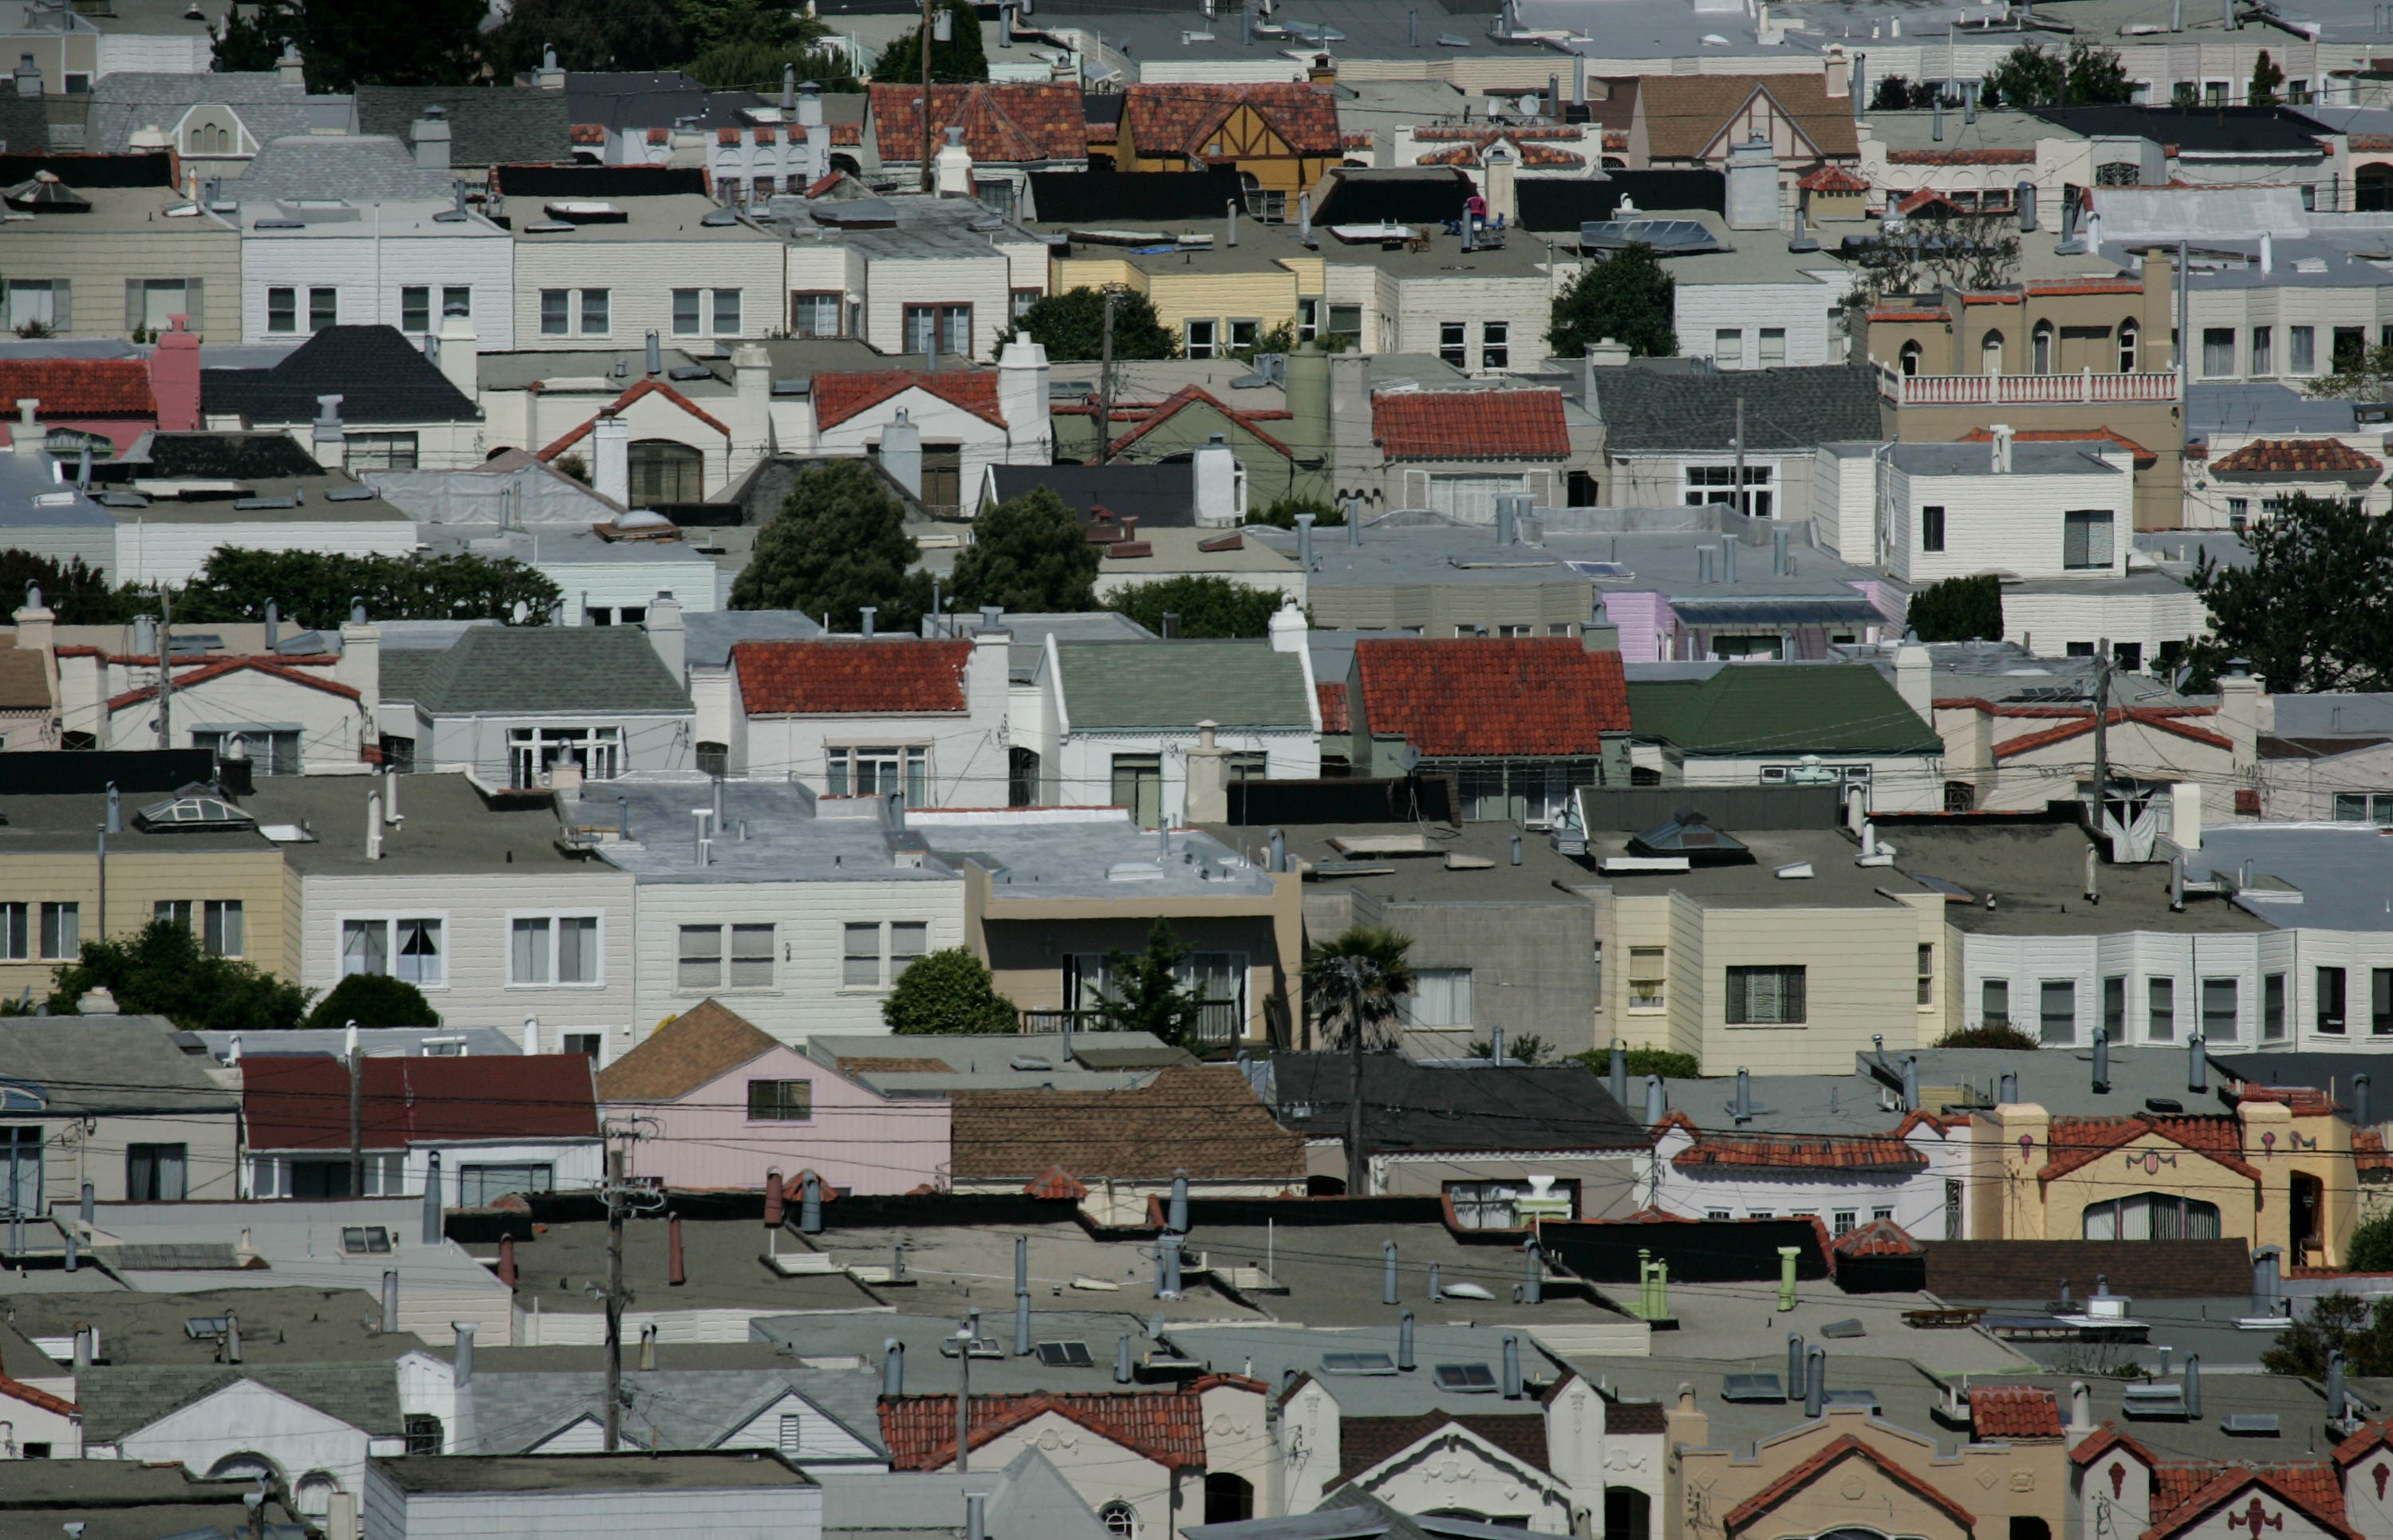 Rows of houses stand June 6, 2007 in San Francisco, California. (Photo by Justin Sullivan/Getty Images)